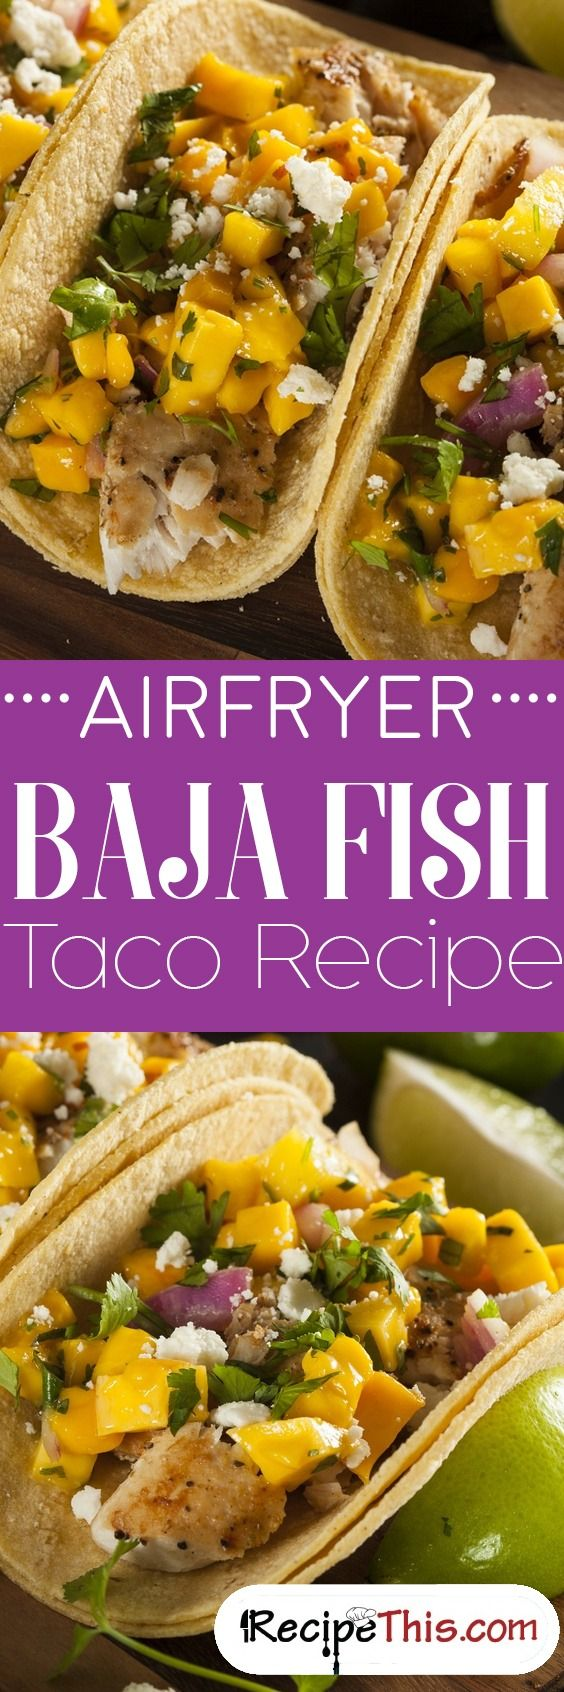 #Airfryer #Baja Fish Taco Recipe